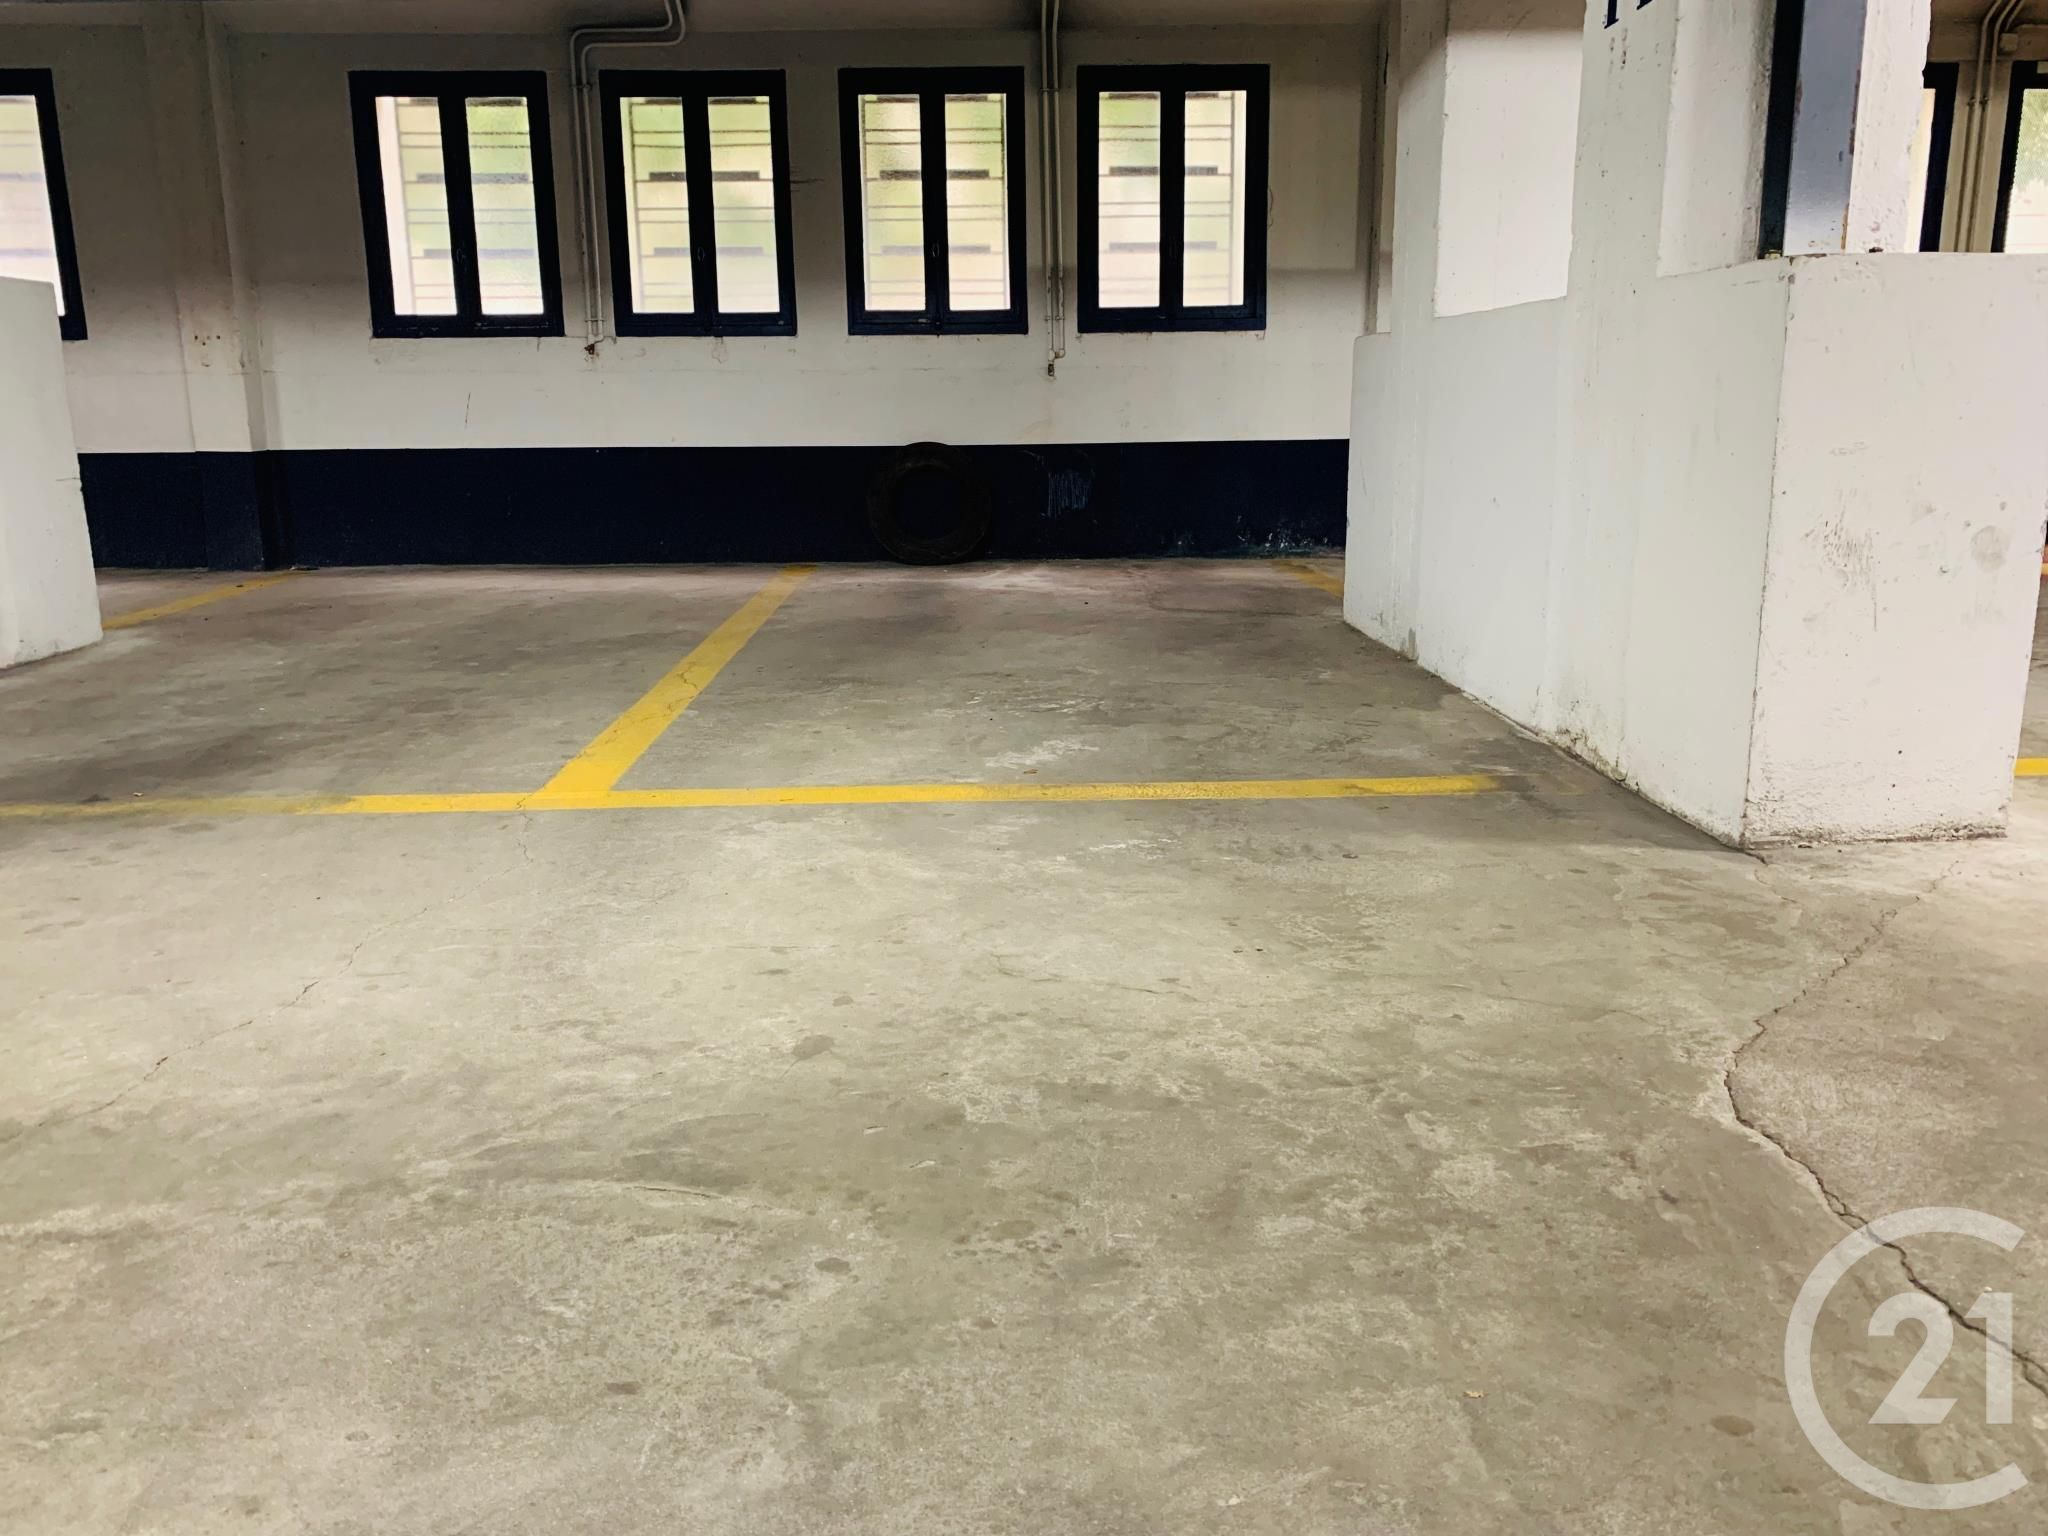 Parking à louer - 12,0 m2 - PARIS - 75016 - ILE-DE-FRANCE